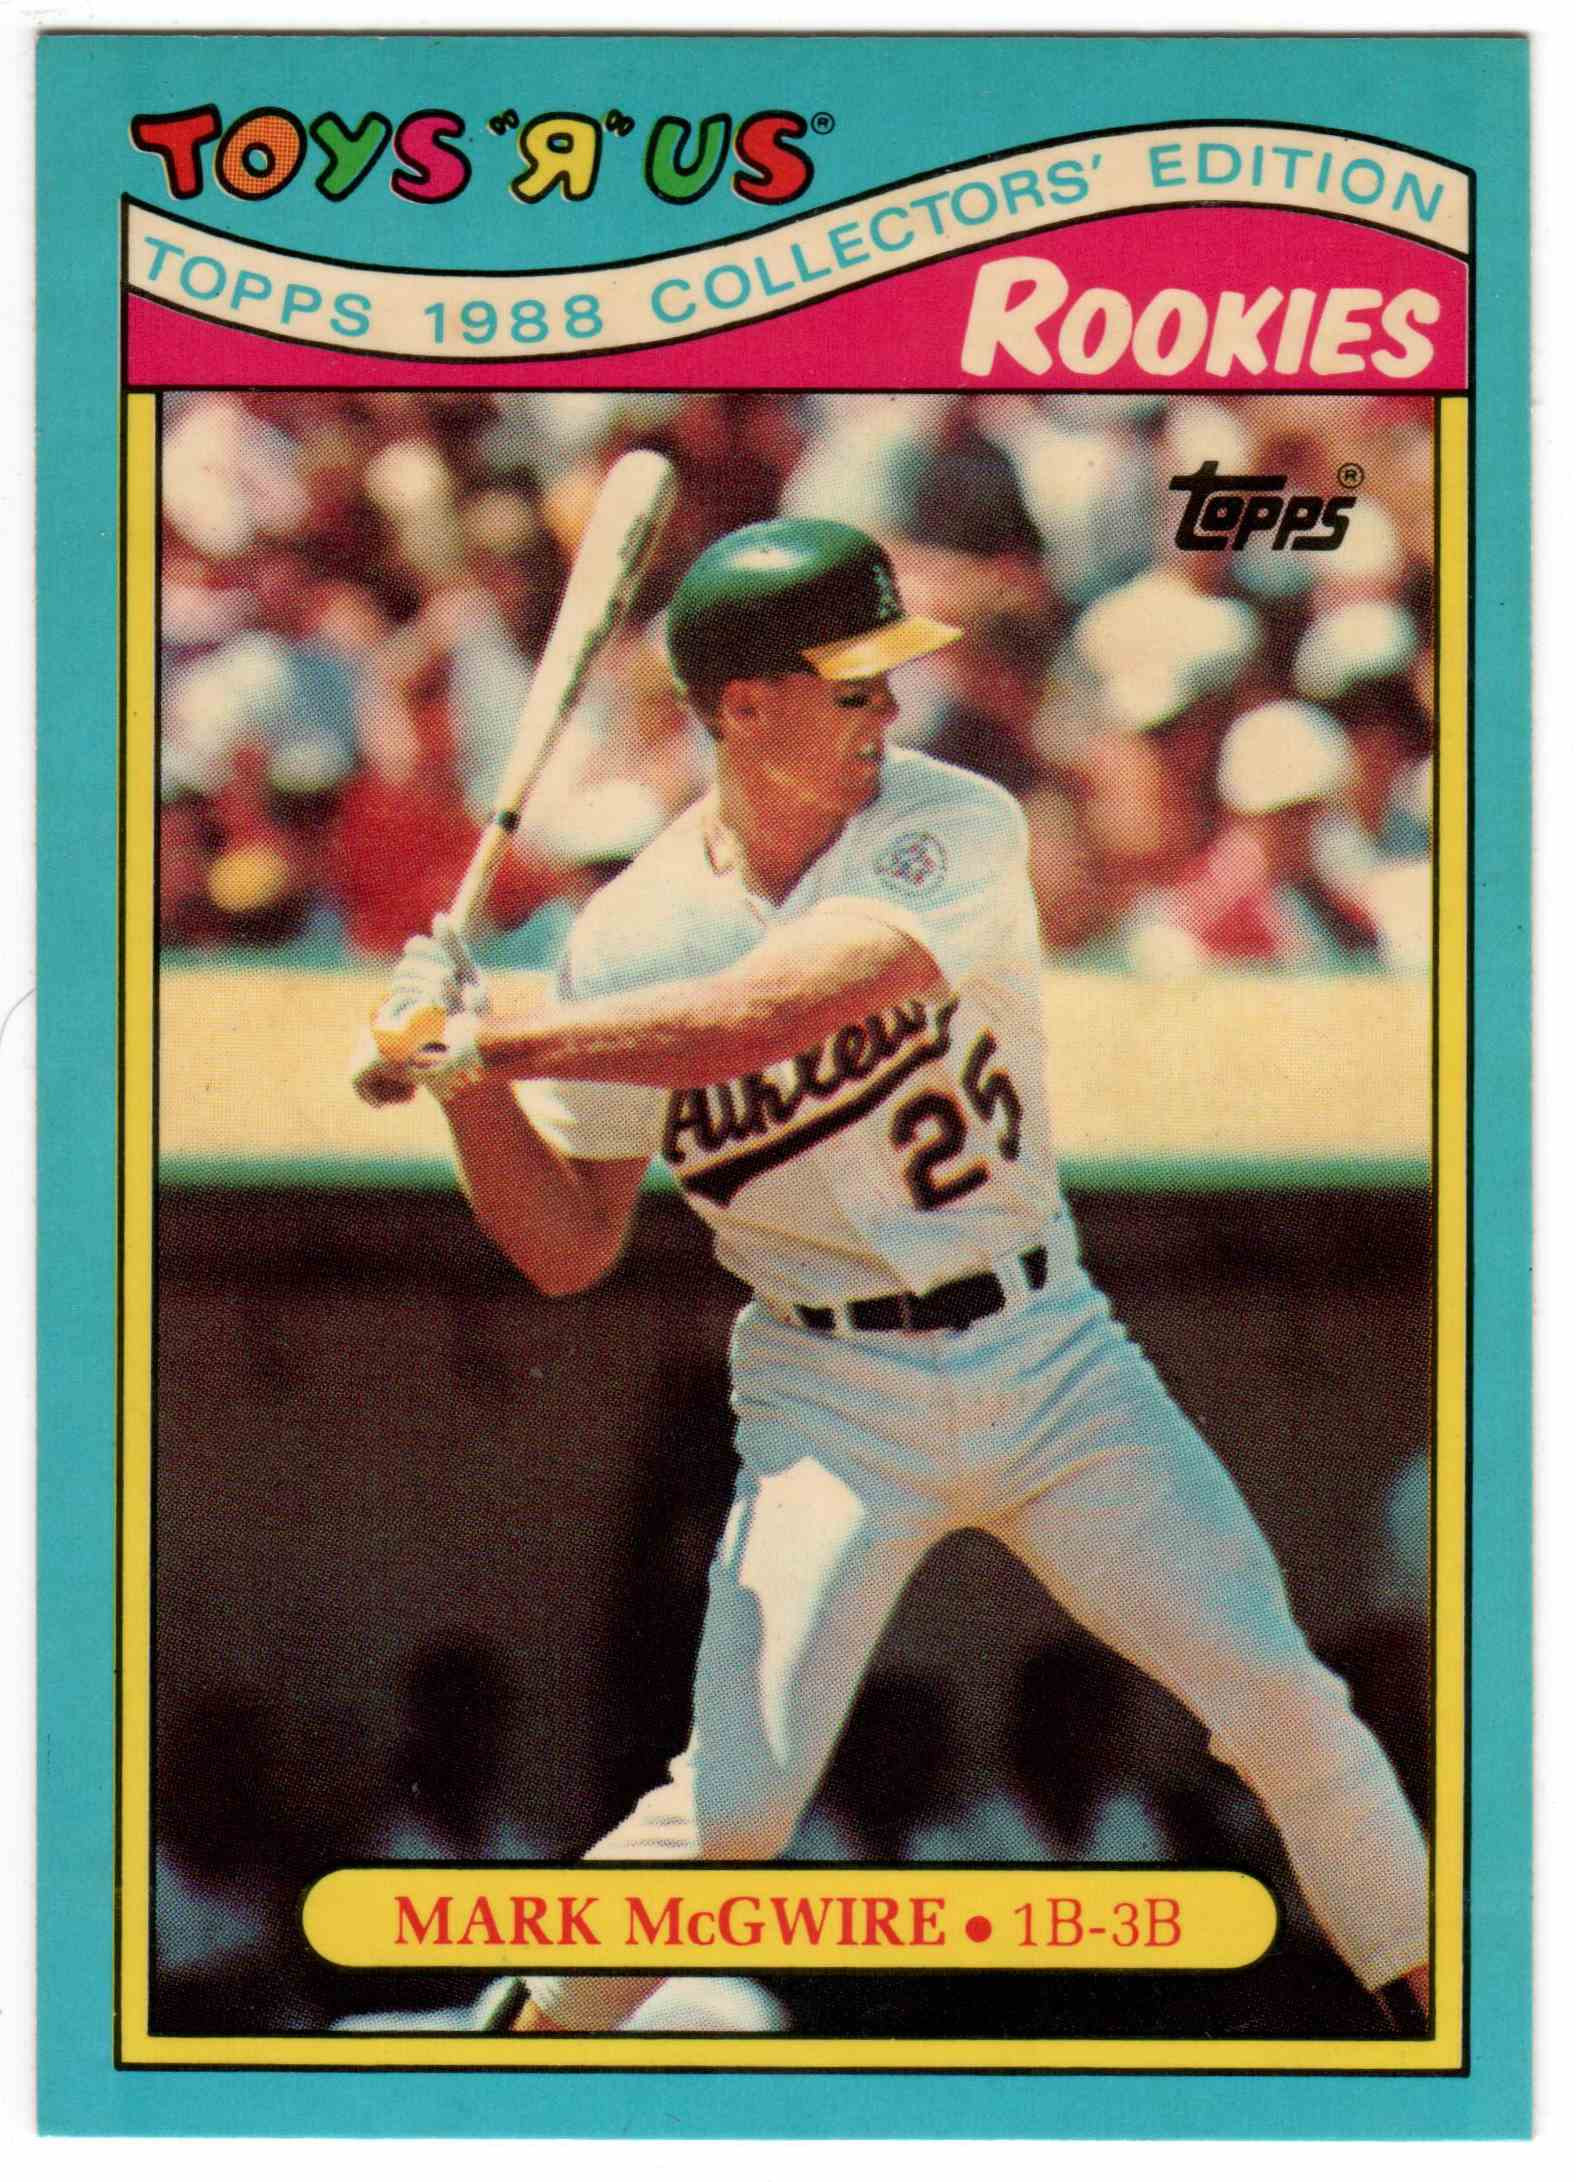 1988 Topps Toys R Us Rookies Mark McGwire #19 card front image